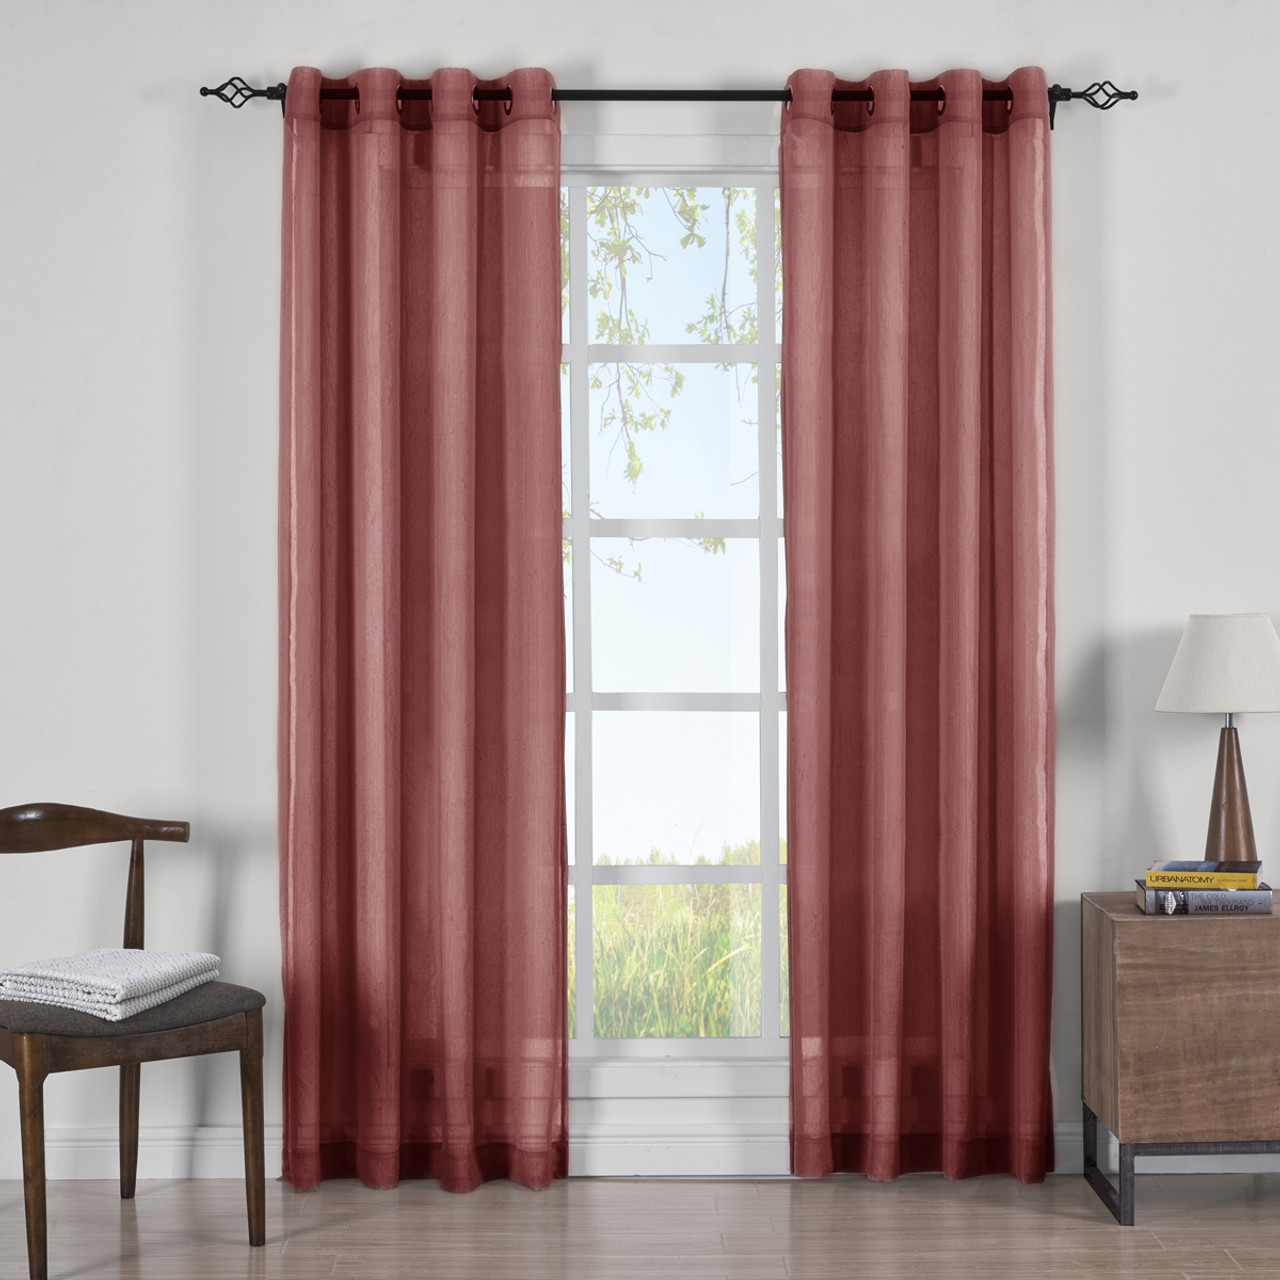 voile panel rhapsody panels curtain sheer